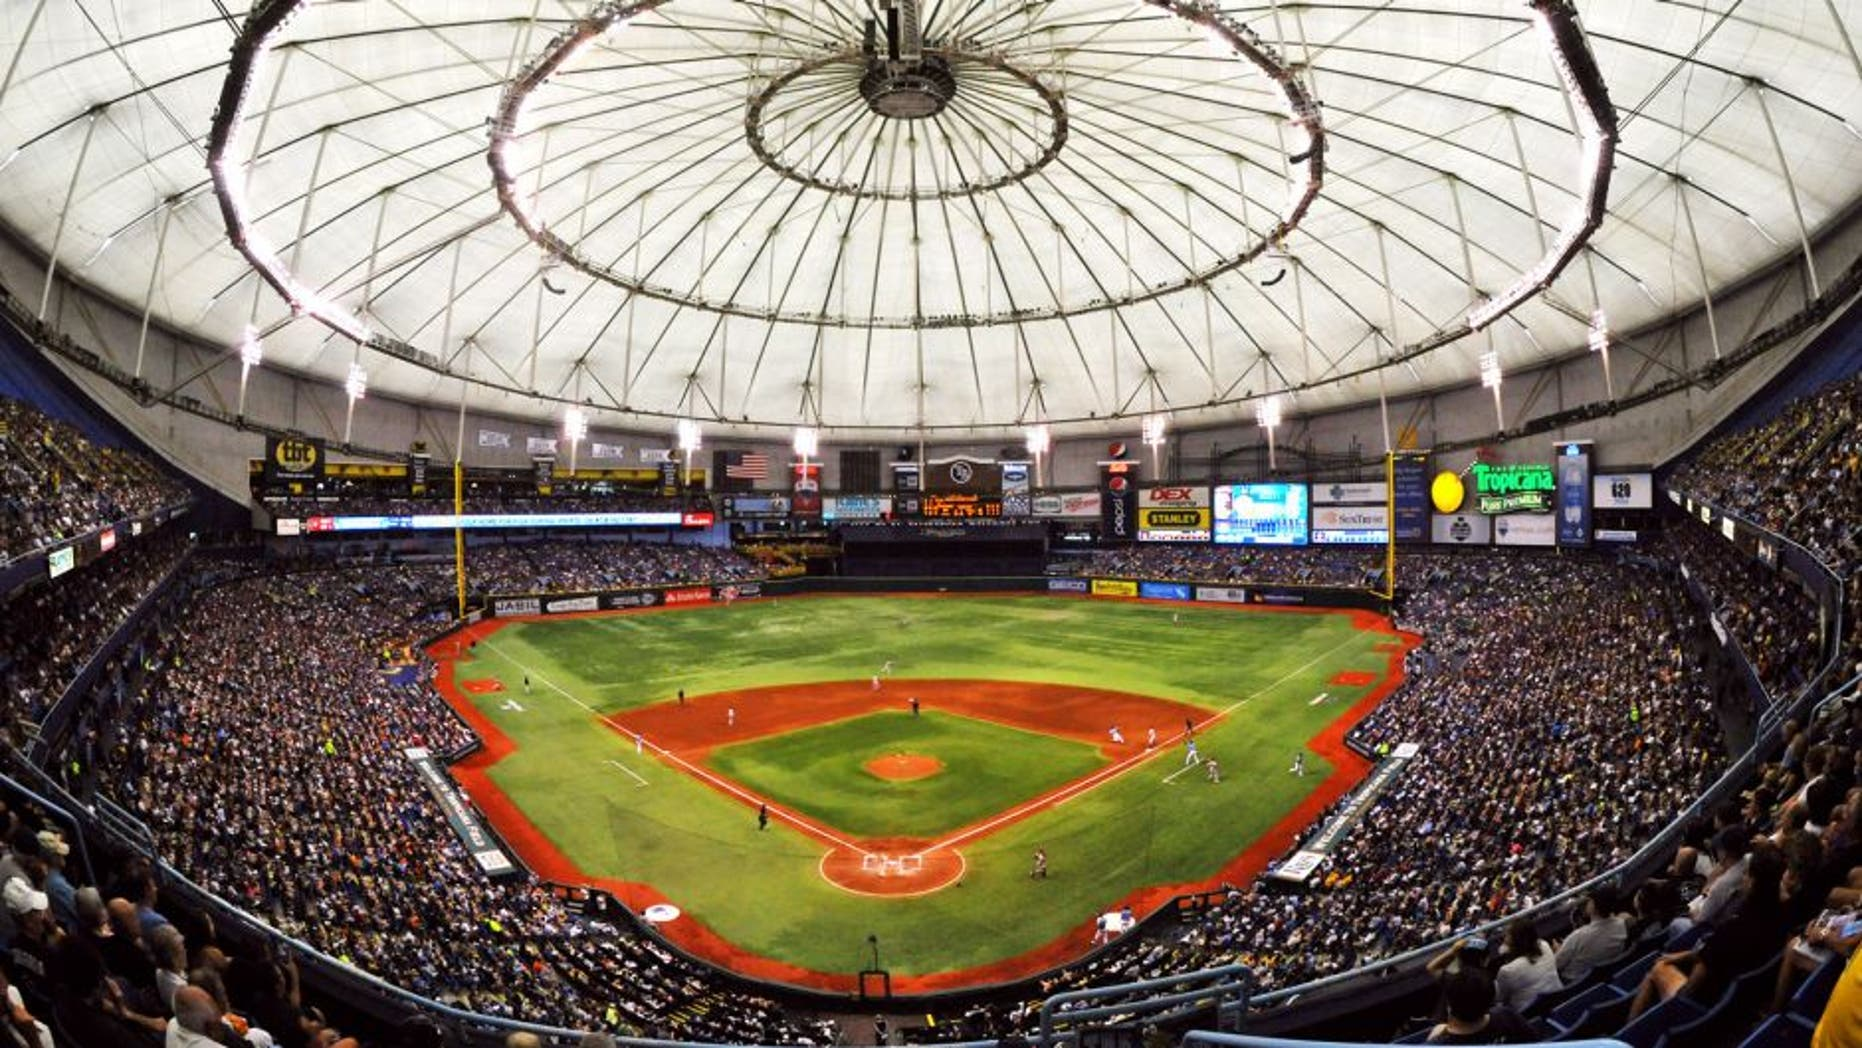 ST. PETERSBURG, FL - AUGUST 4: A capacity crowd of 34,078 fills Tropicana Field as the Tampa Bay Rays play against the San Francisco Giants August 4, 2013 at Tropicana Field in St. Petersburg, Florida. The Rays won 4 - 3. (Photo by Al Messerschmidt/Getty Images)